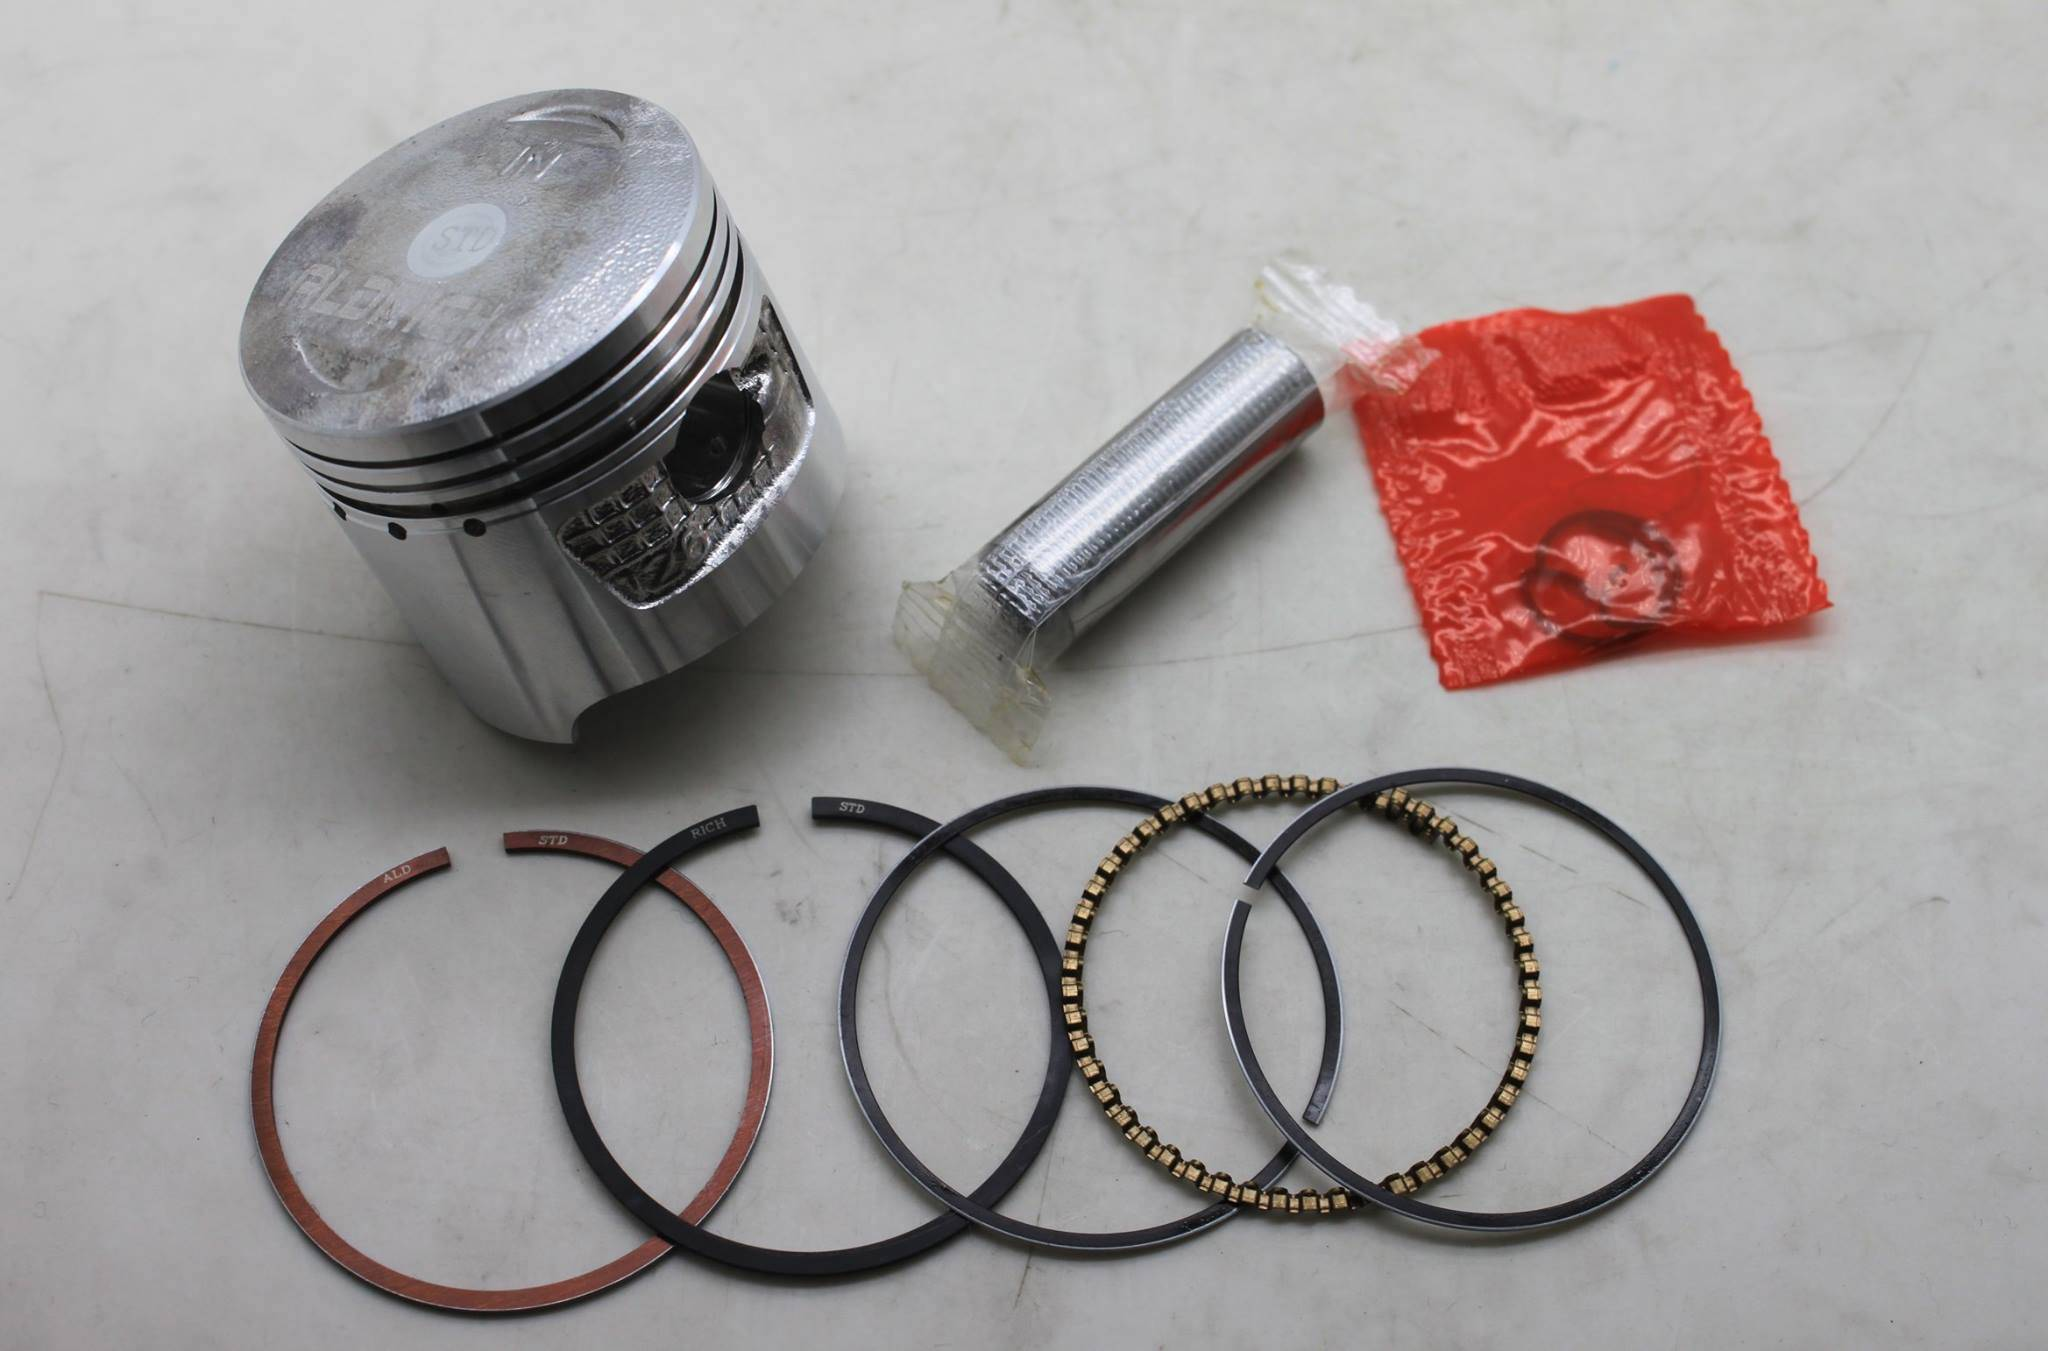 ALDRICH FOR CD70 PISTON AND RING, GOOD QUALITY!